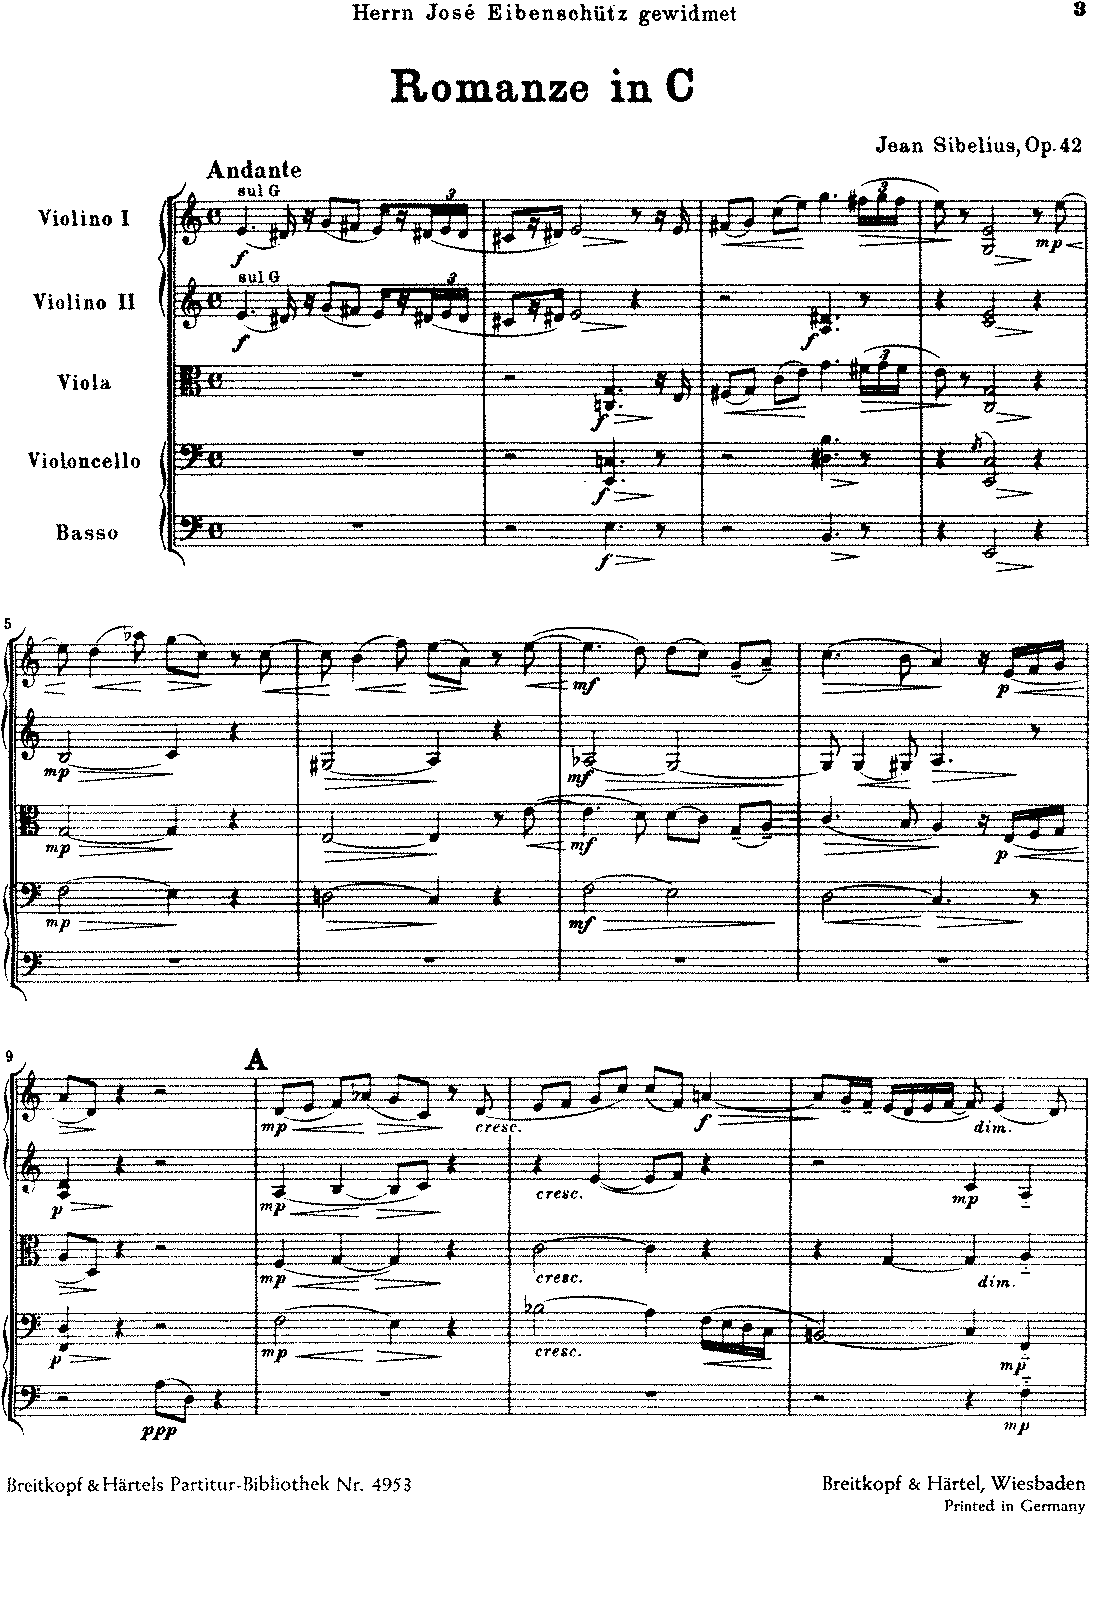 Sibelius - Romance in C for strings, Op.42 (orch. score).pdf